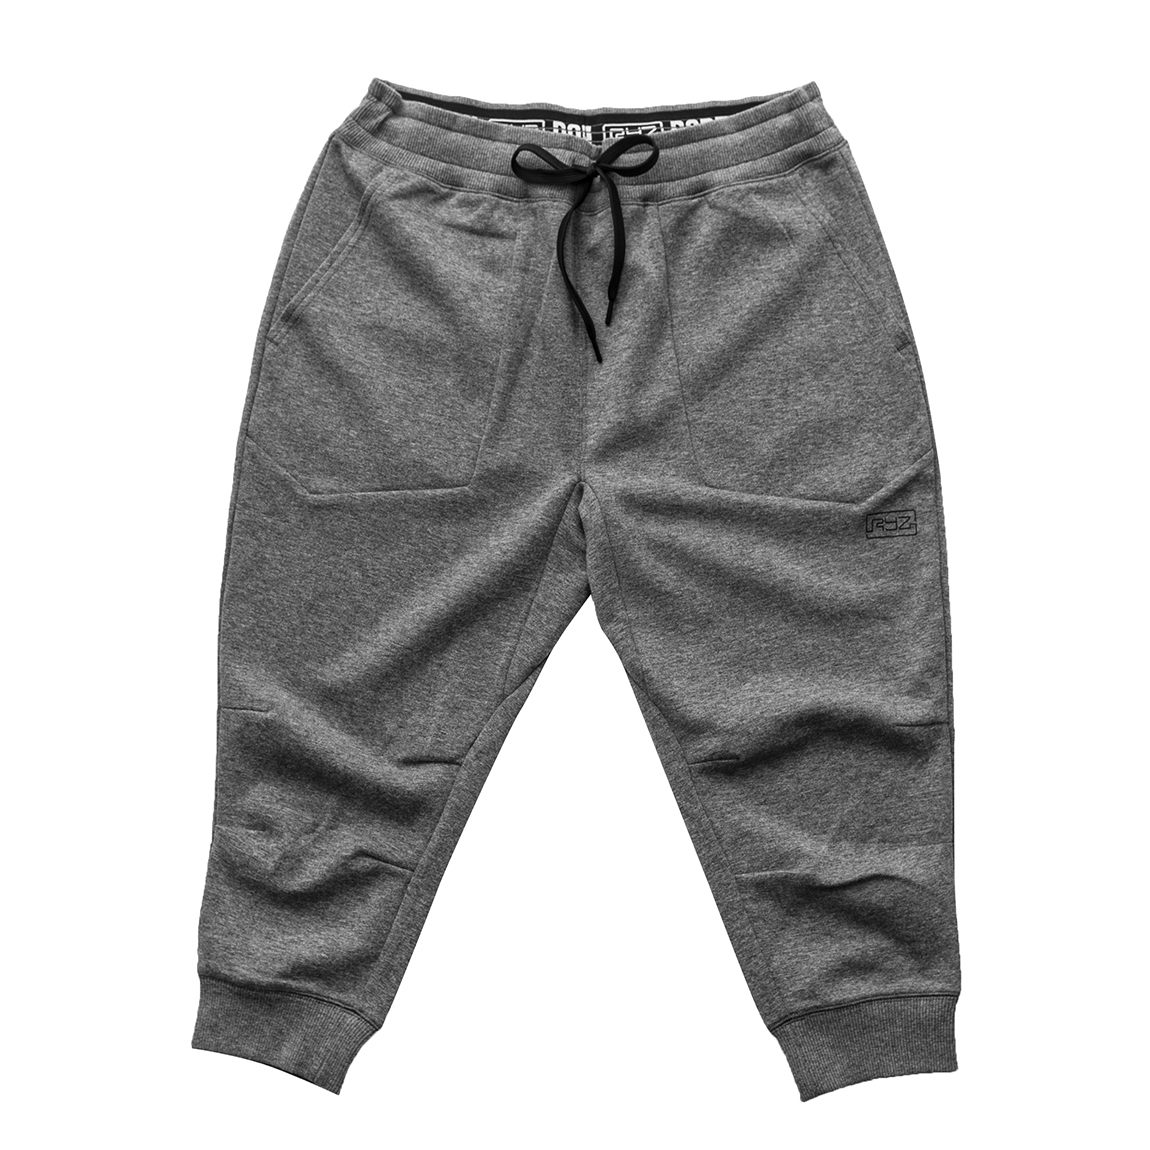 RYZ MOBILITY 3/4 COTTON PANTS